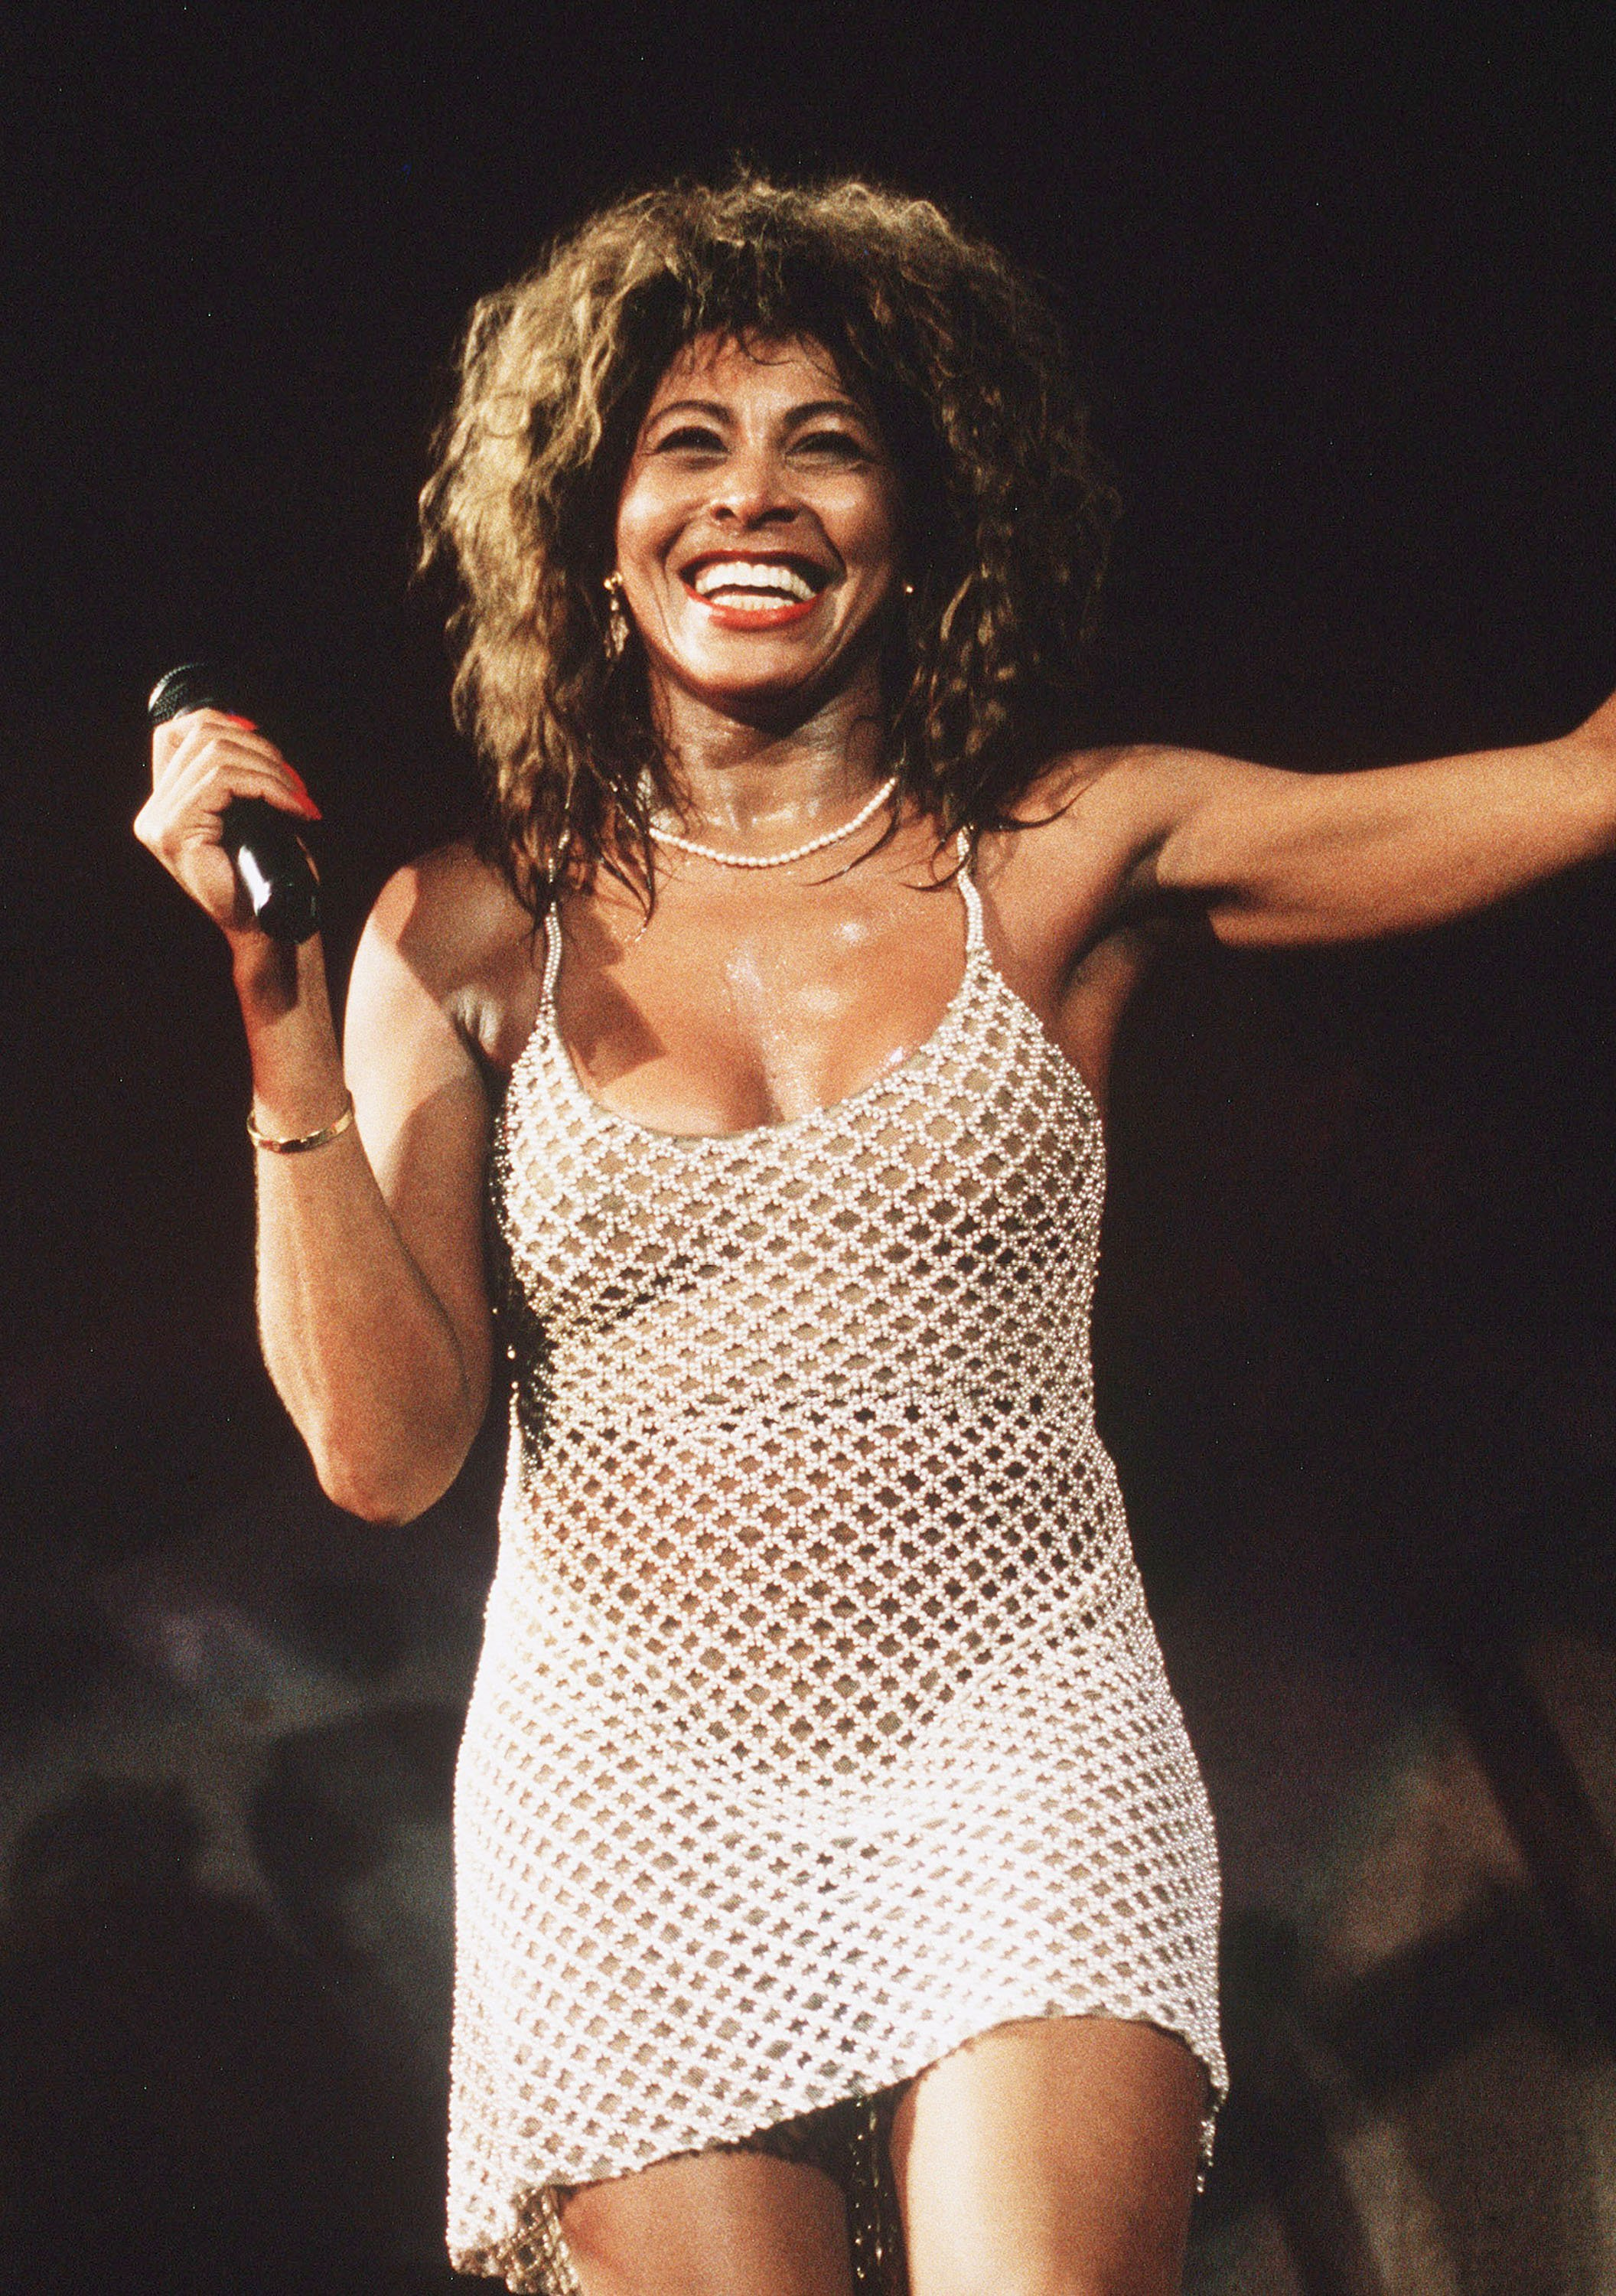 Singer Tina Turner performs live on stage at Wembley Stadium, 1990. | Source: GettyImages